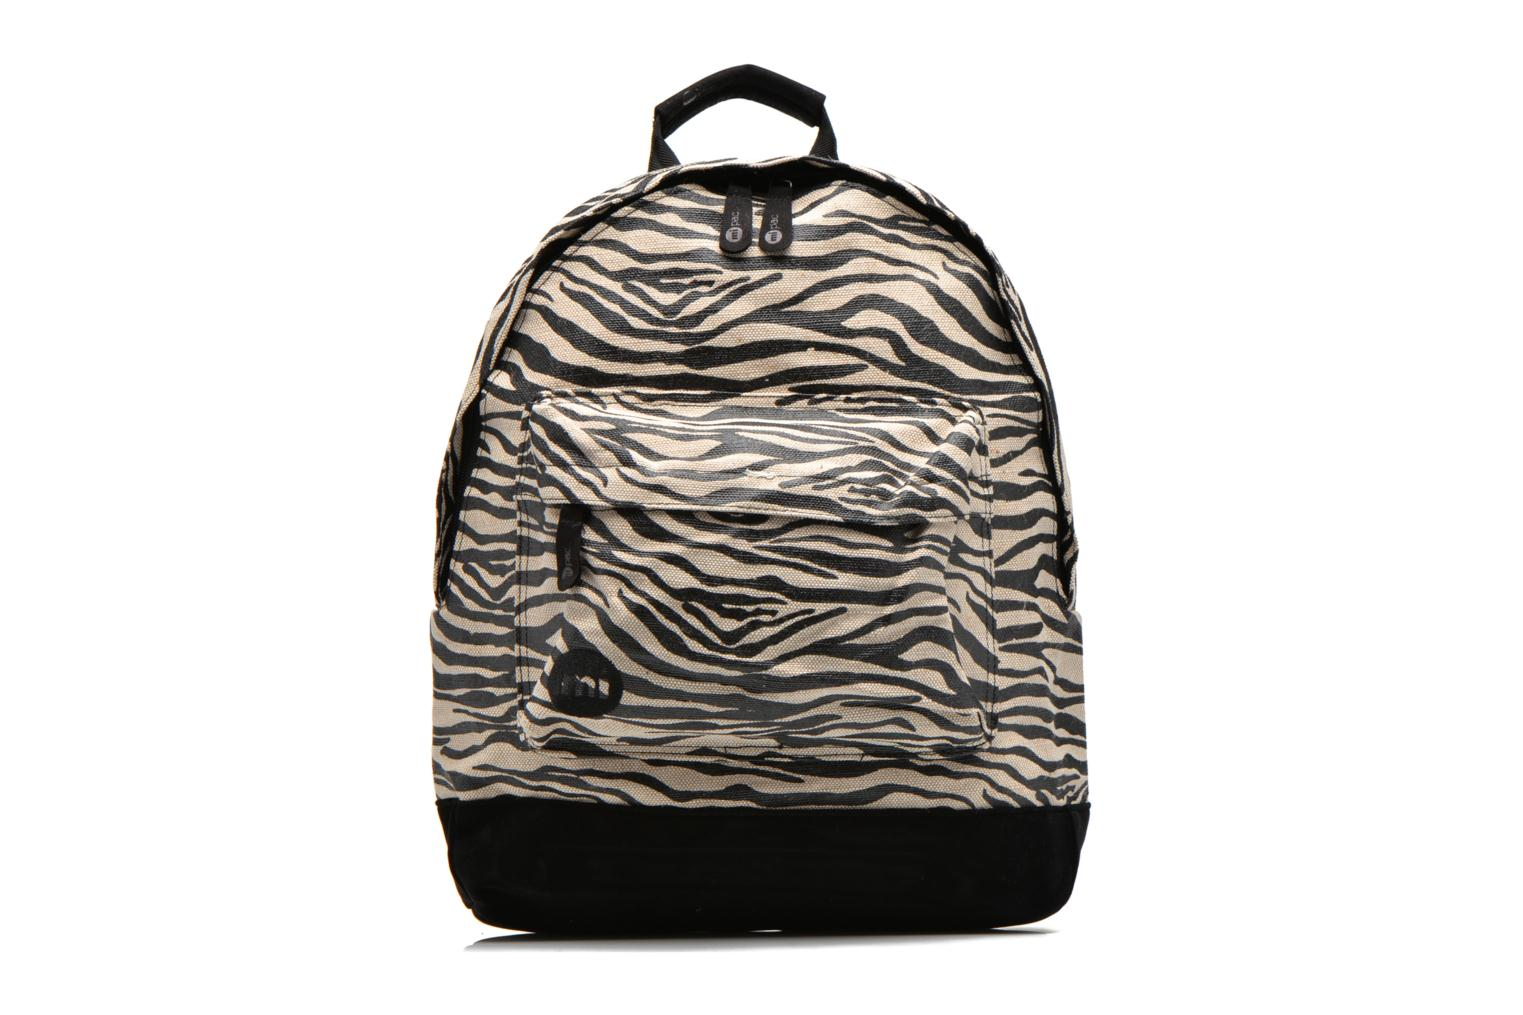 Premium Backpack Black/white Canvas Zebra